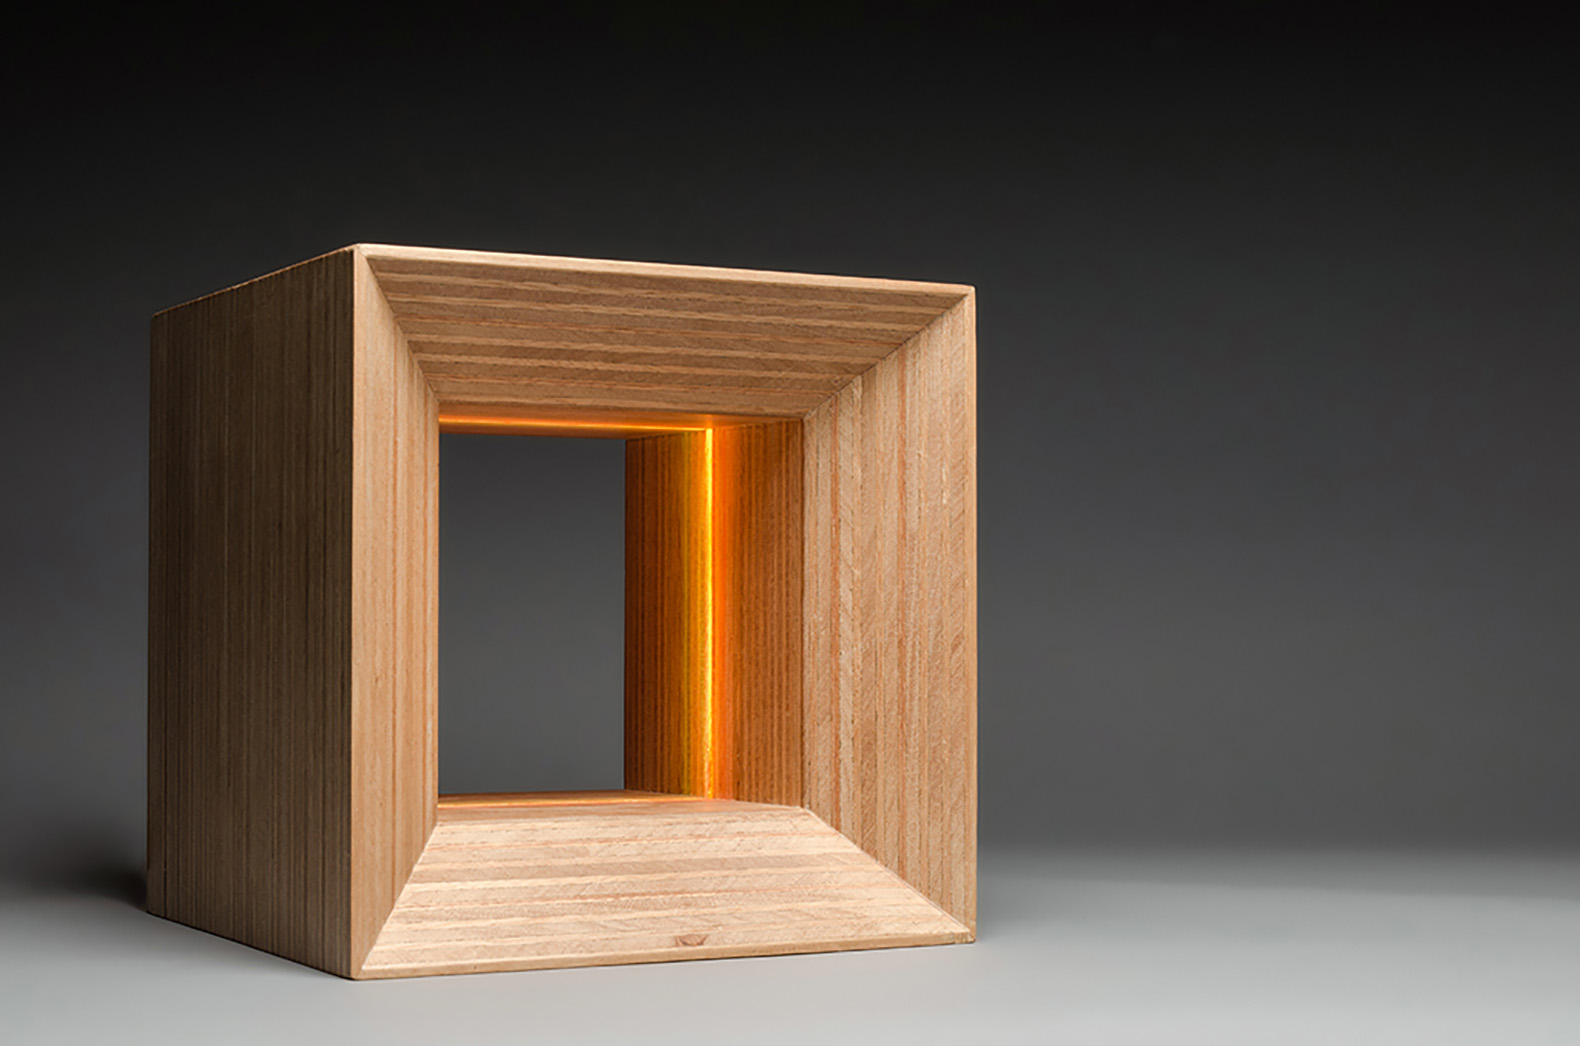 wood lamps designs lux3 is a color-changing wooden lamp that boosts your mood and health ADMFWCY